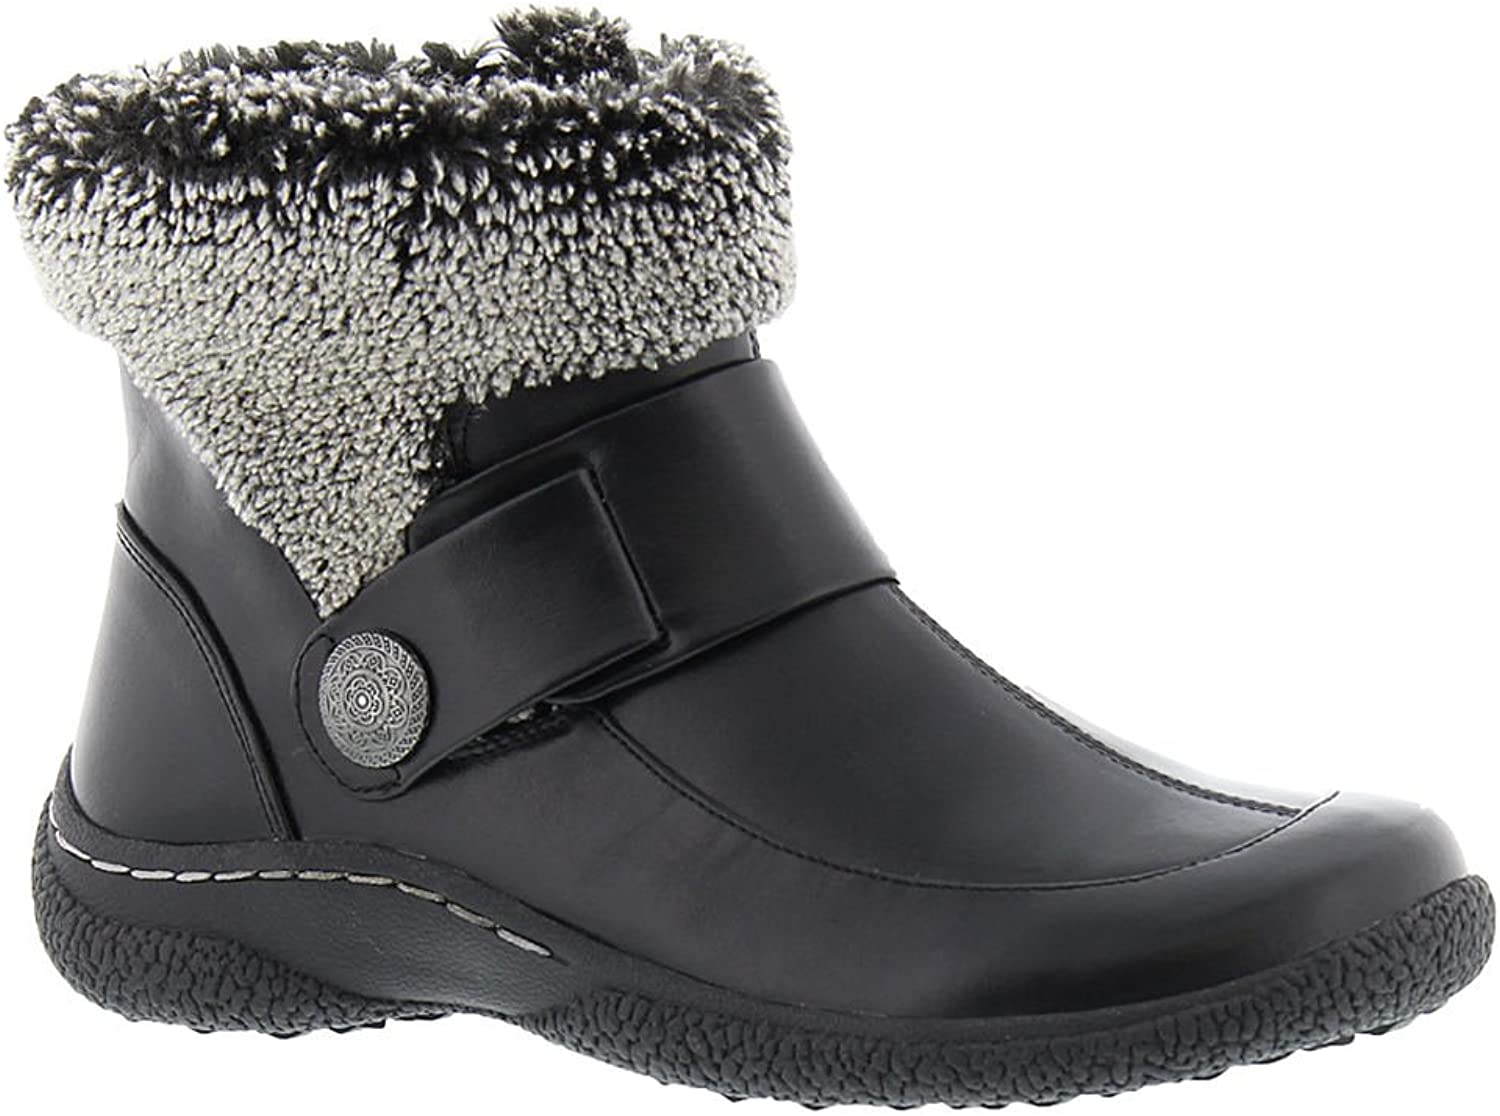 Wanderlust Bel 2 Women's Boot